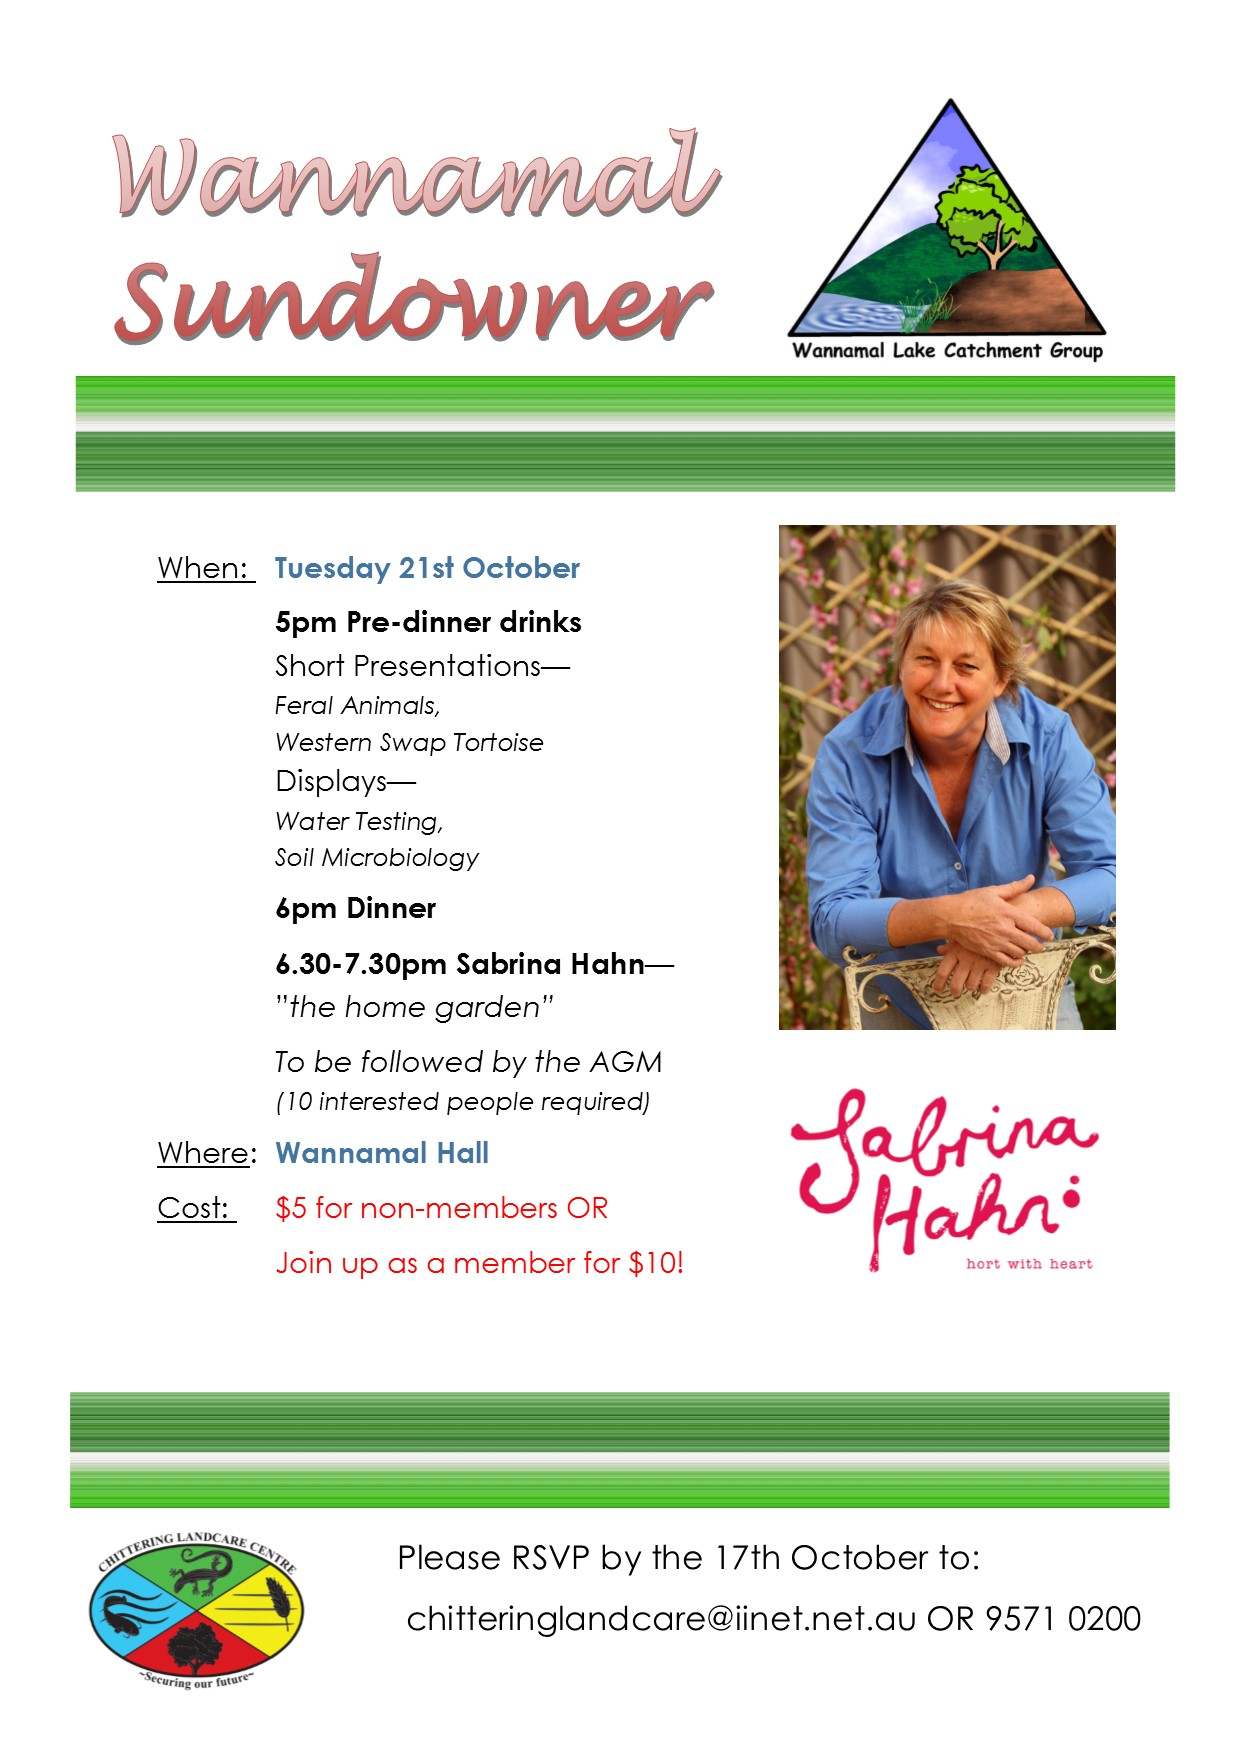 Wannamal Sundowner Flyer